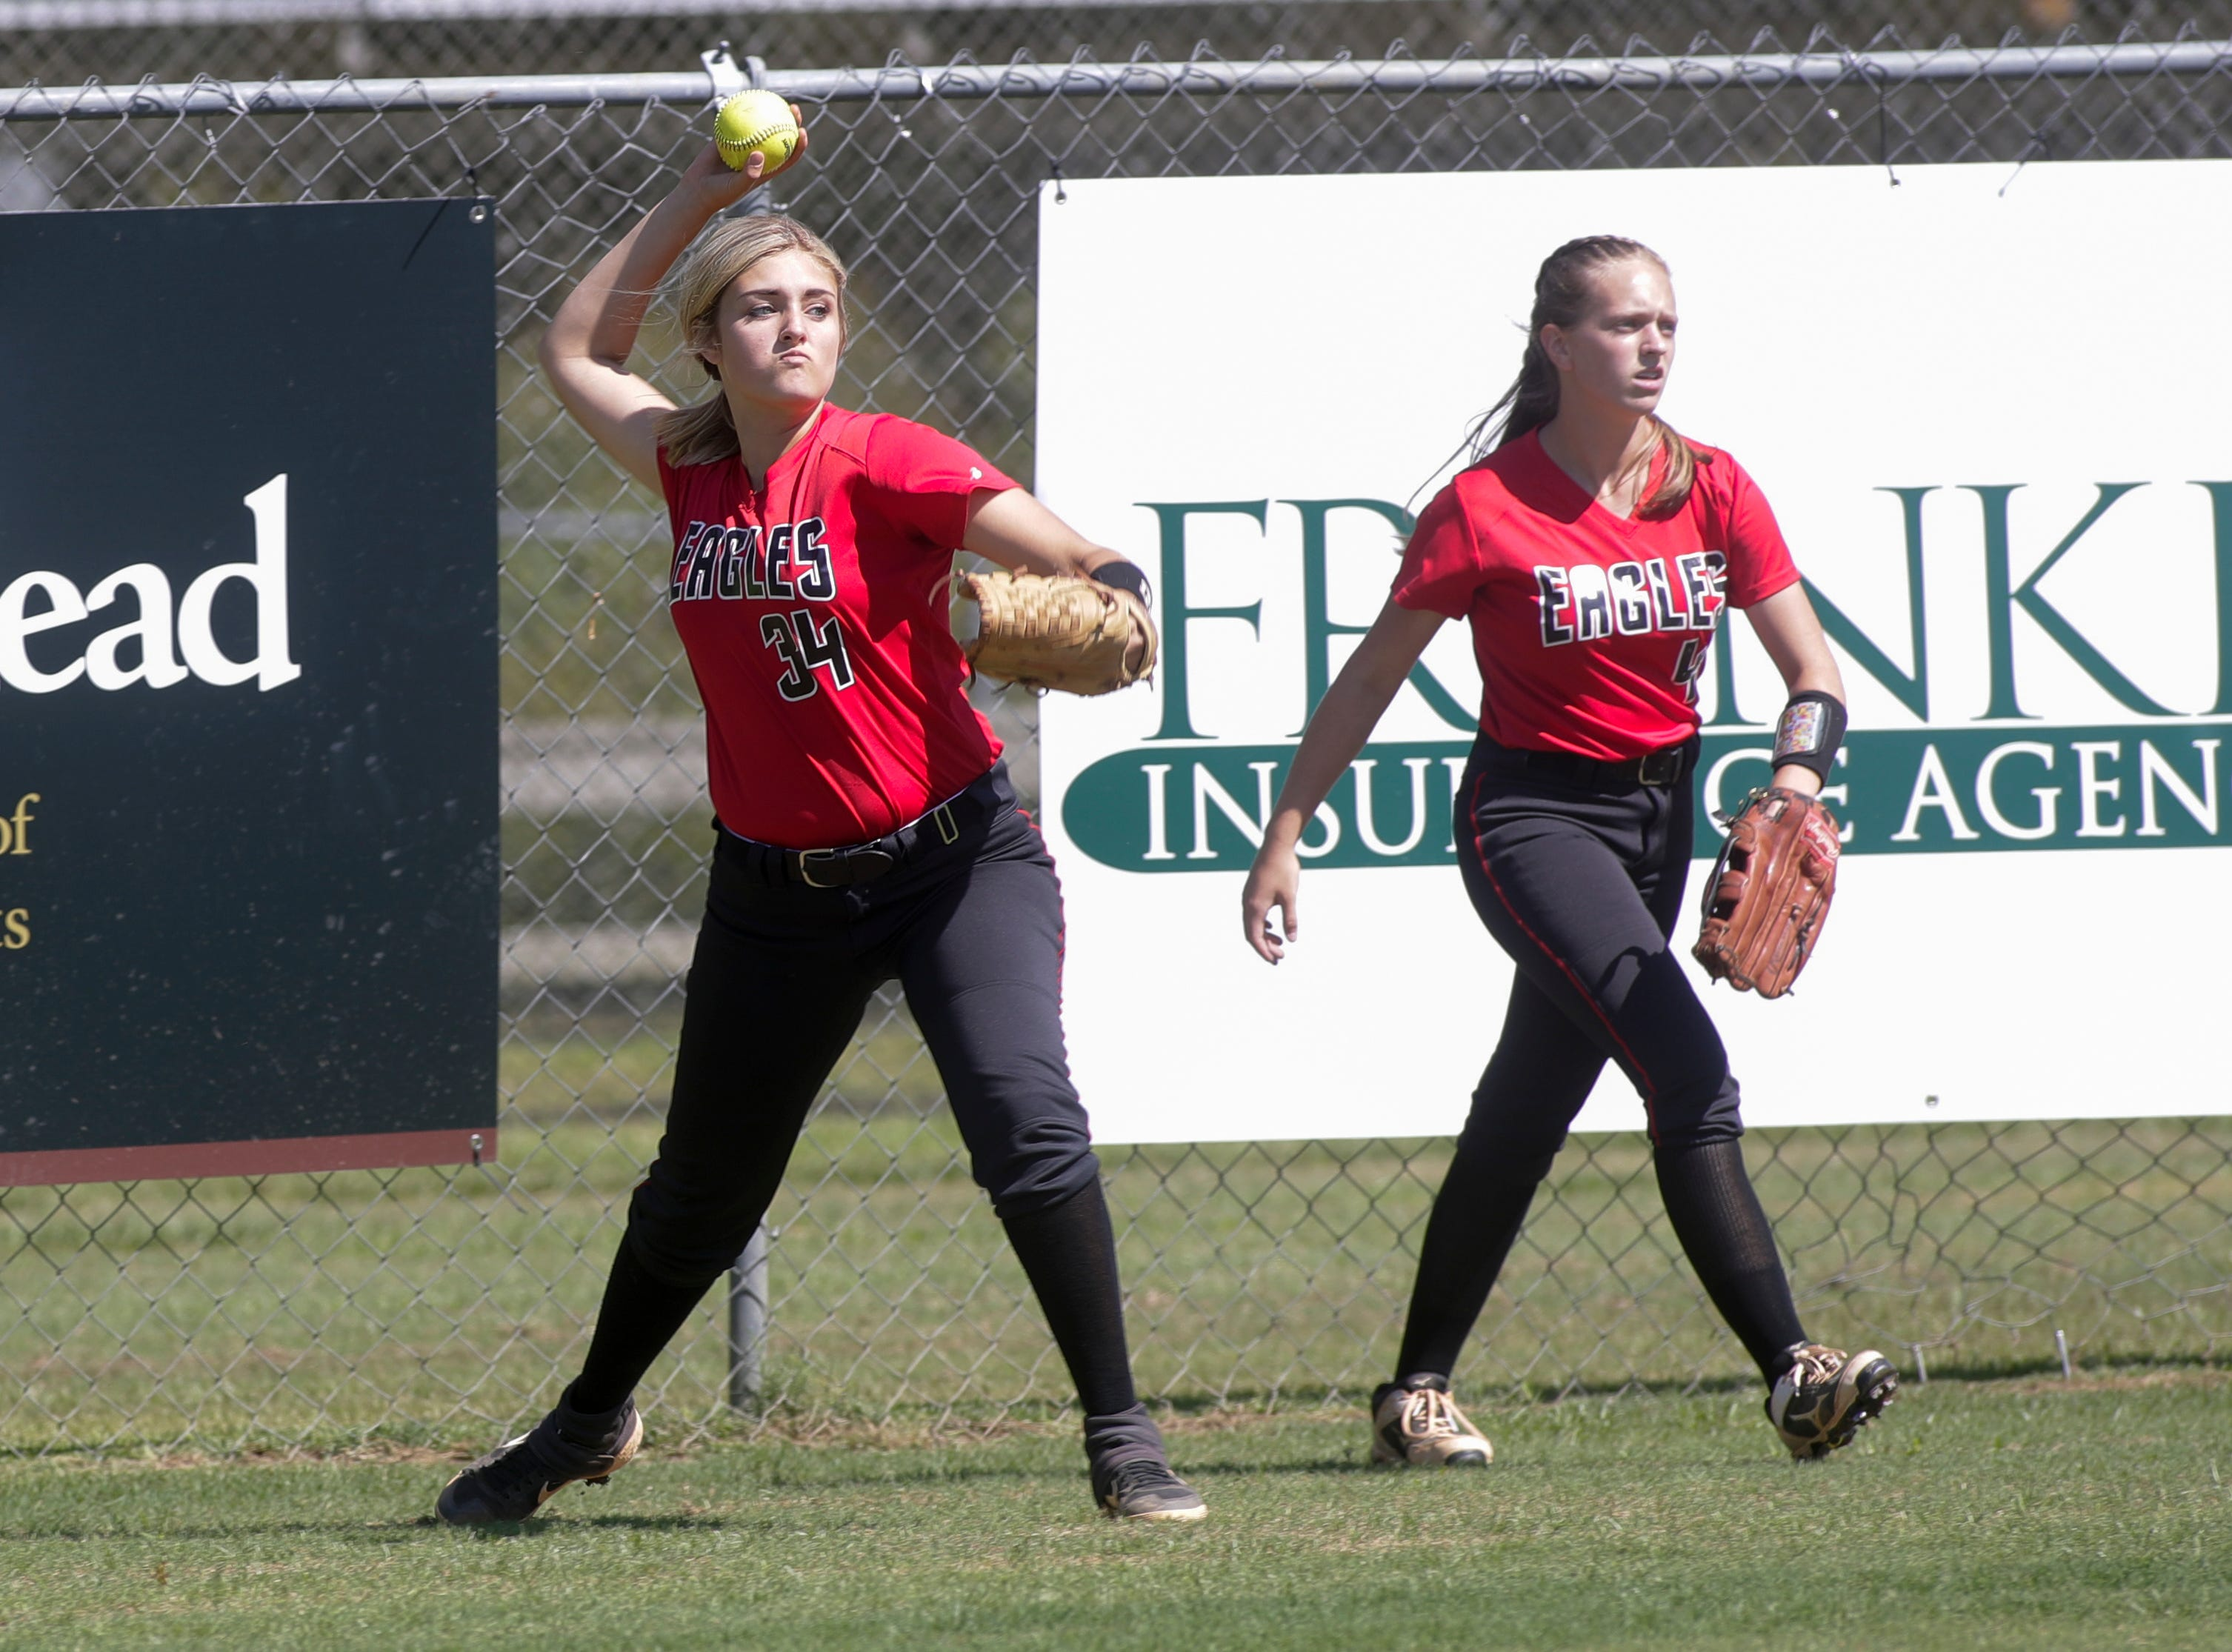 North Florida Christian's Ramsey Shiver (34) throws the ball from the outfield during the 1-3A regional final game between NFC and University Christian at NFC Tuesday, May 14, 2019. UC defeated NFC 16 to 11 to advance to the state tournament.